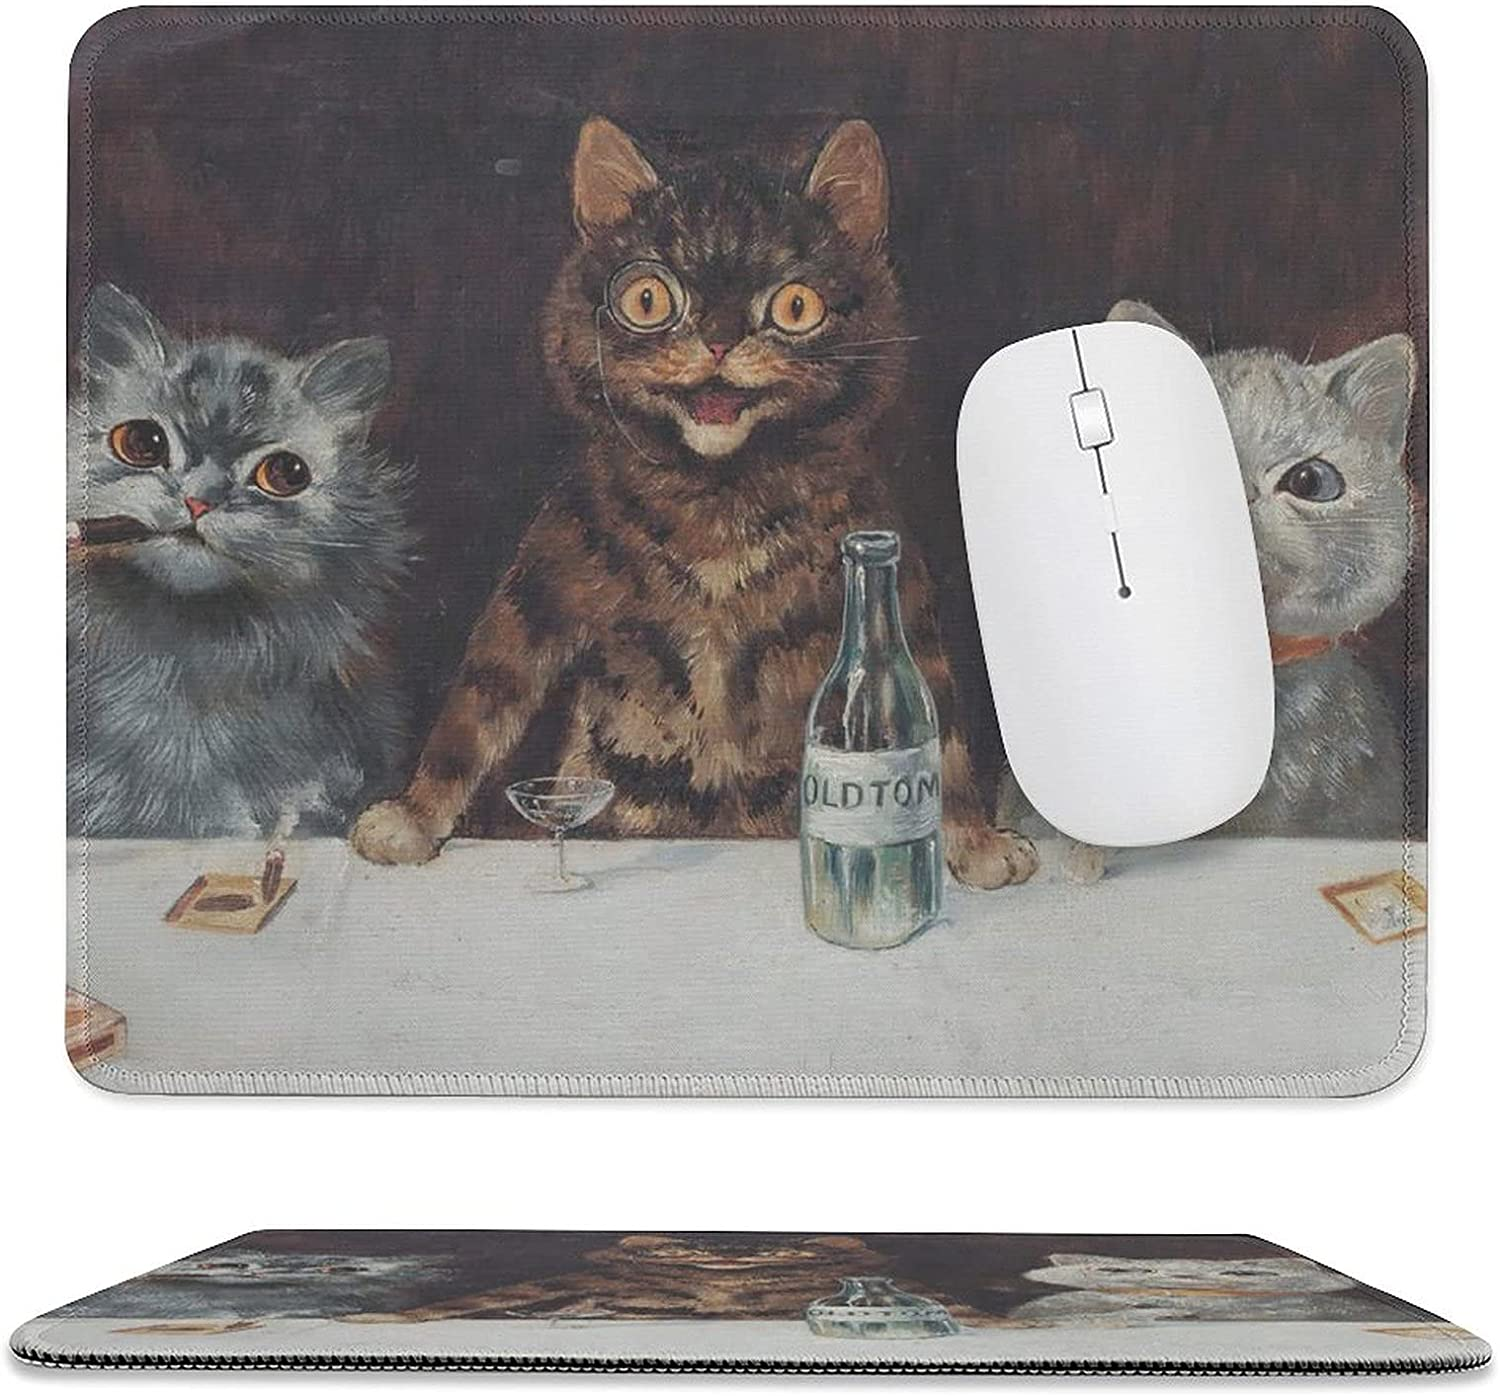 unisex Game Mouse Pad with Stitched Max 83% OFF Edge and Cats Funny Smoking Cartoon